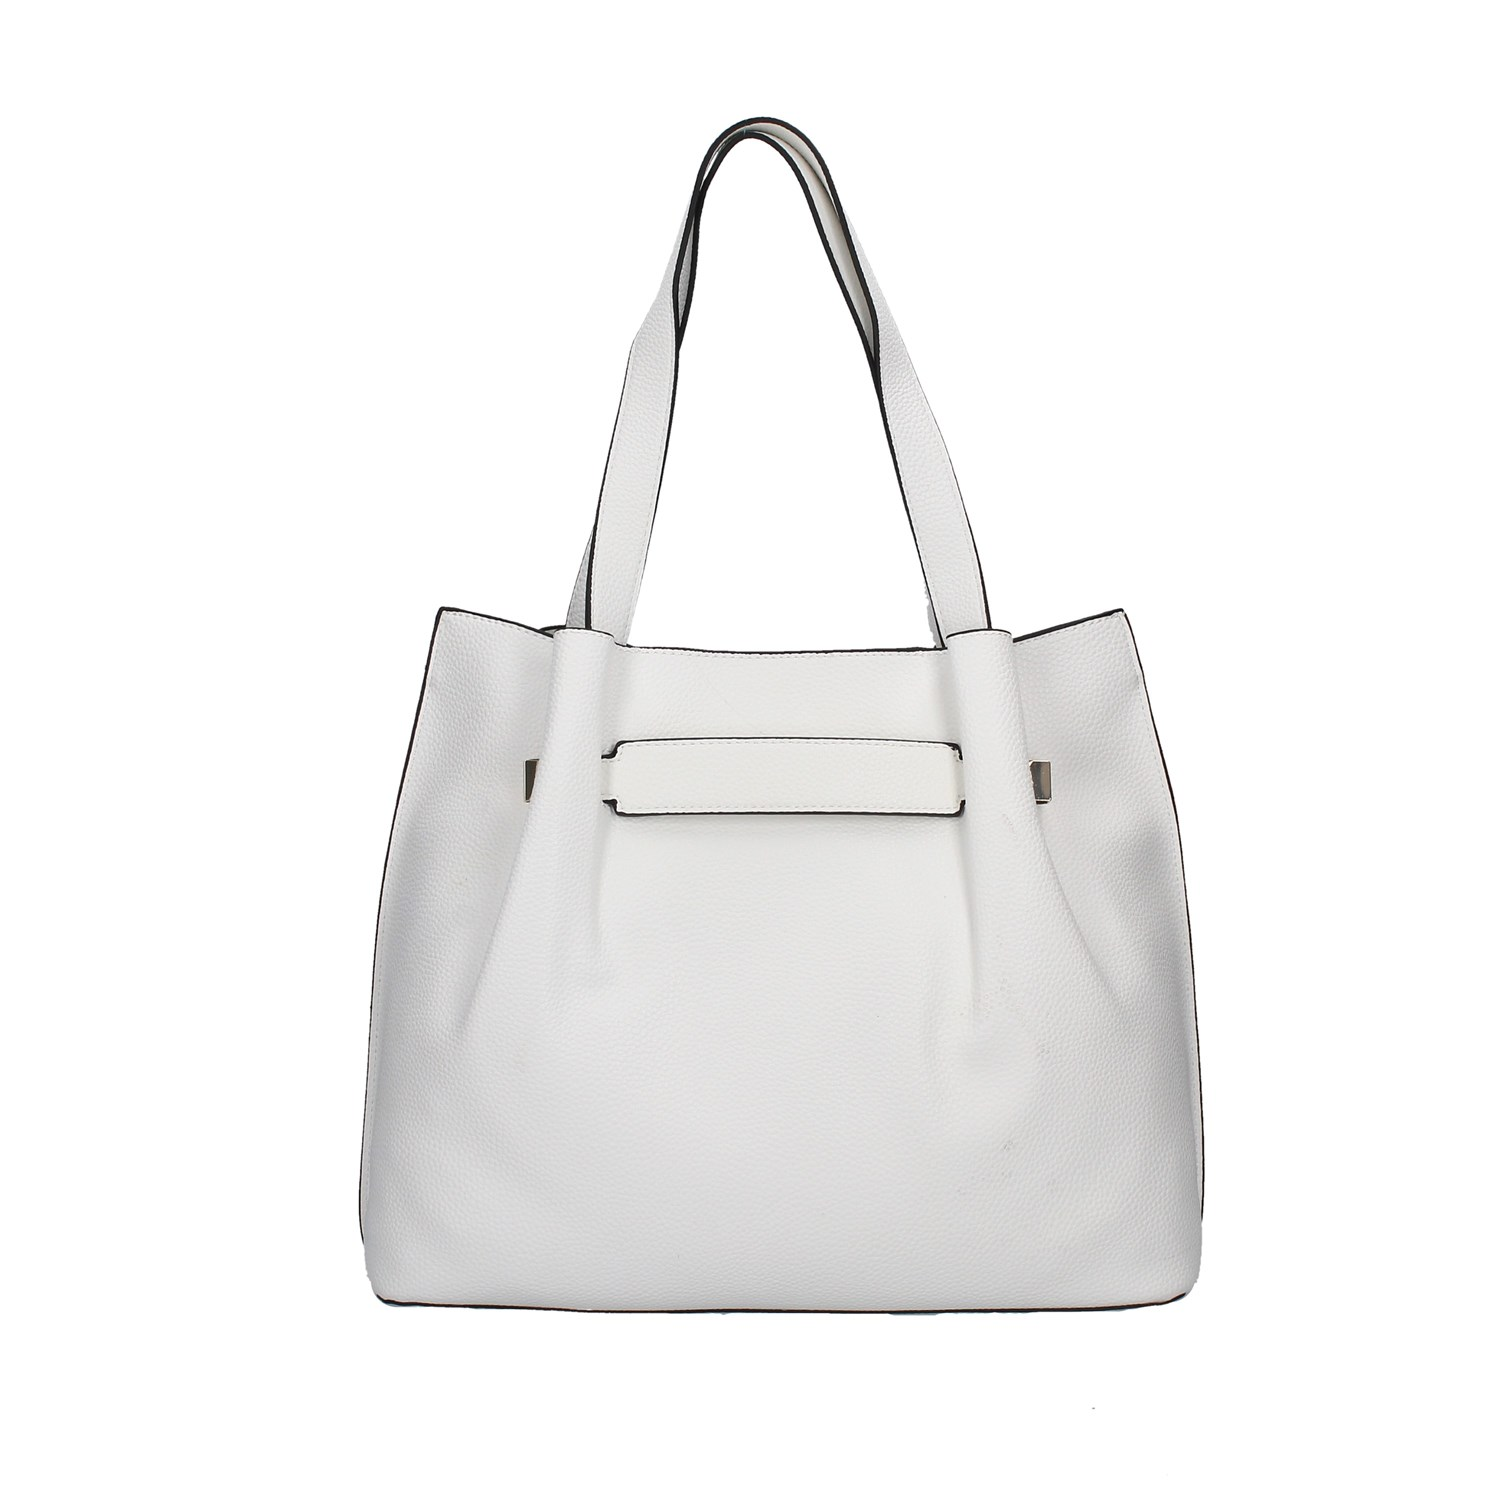 6c6562d562 Valentino Bags VBS2ZH01